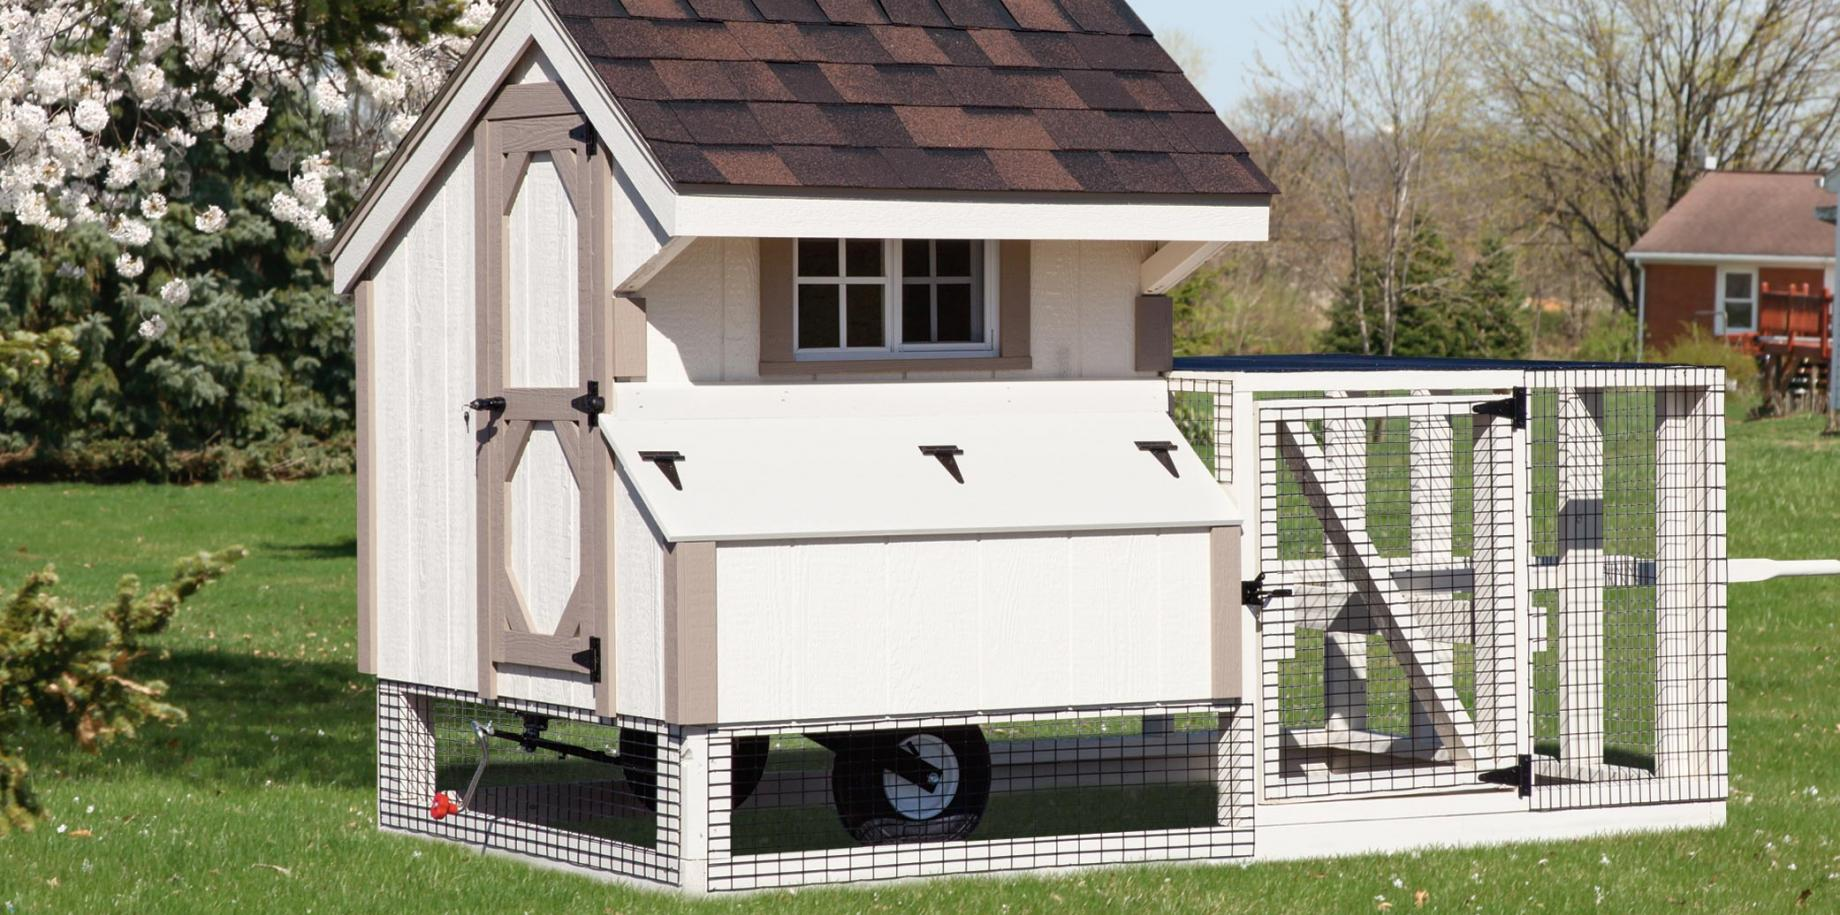 3'x4' Quaker chicken house